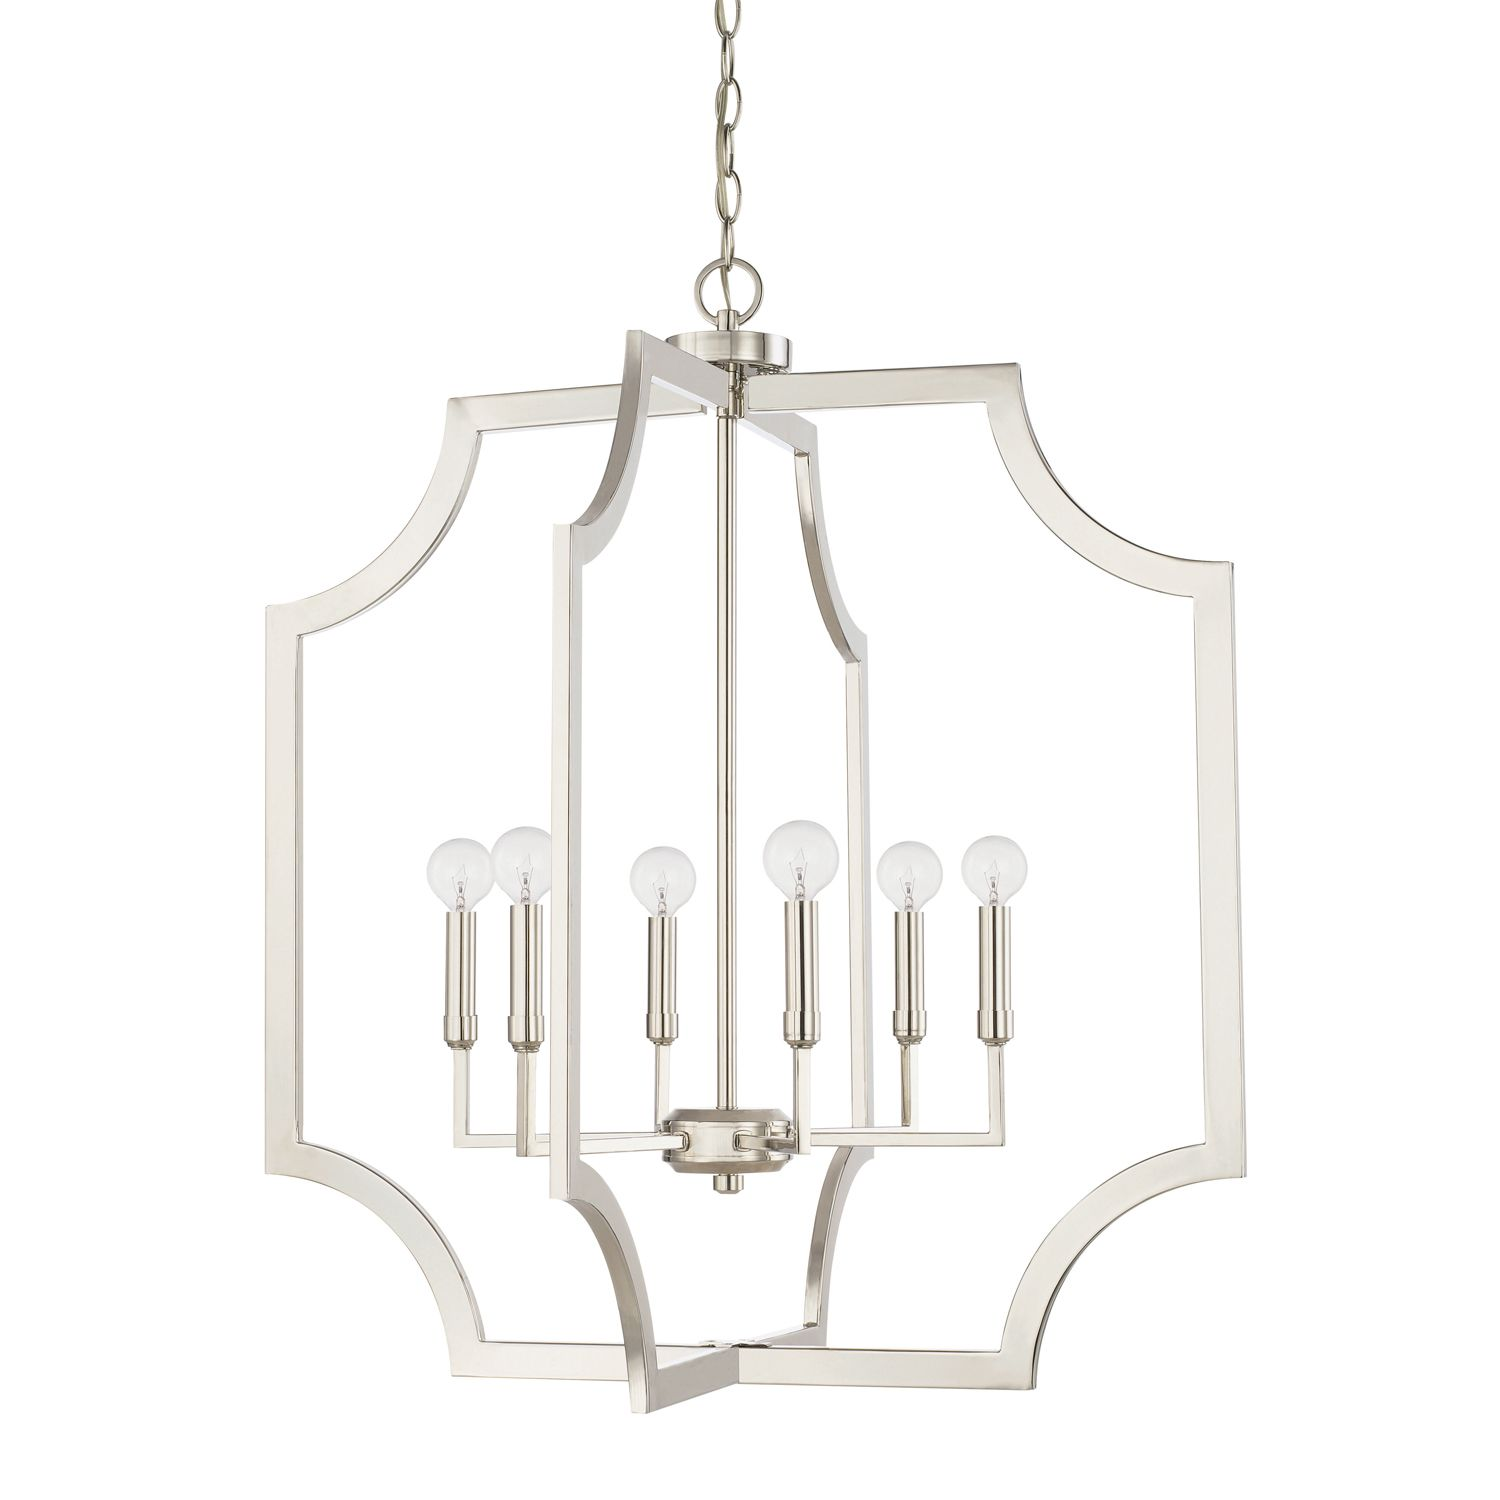 6 Light Foyer Capital Lighting Fixture Company